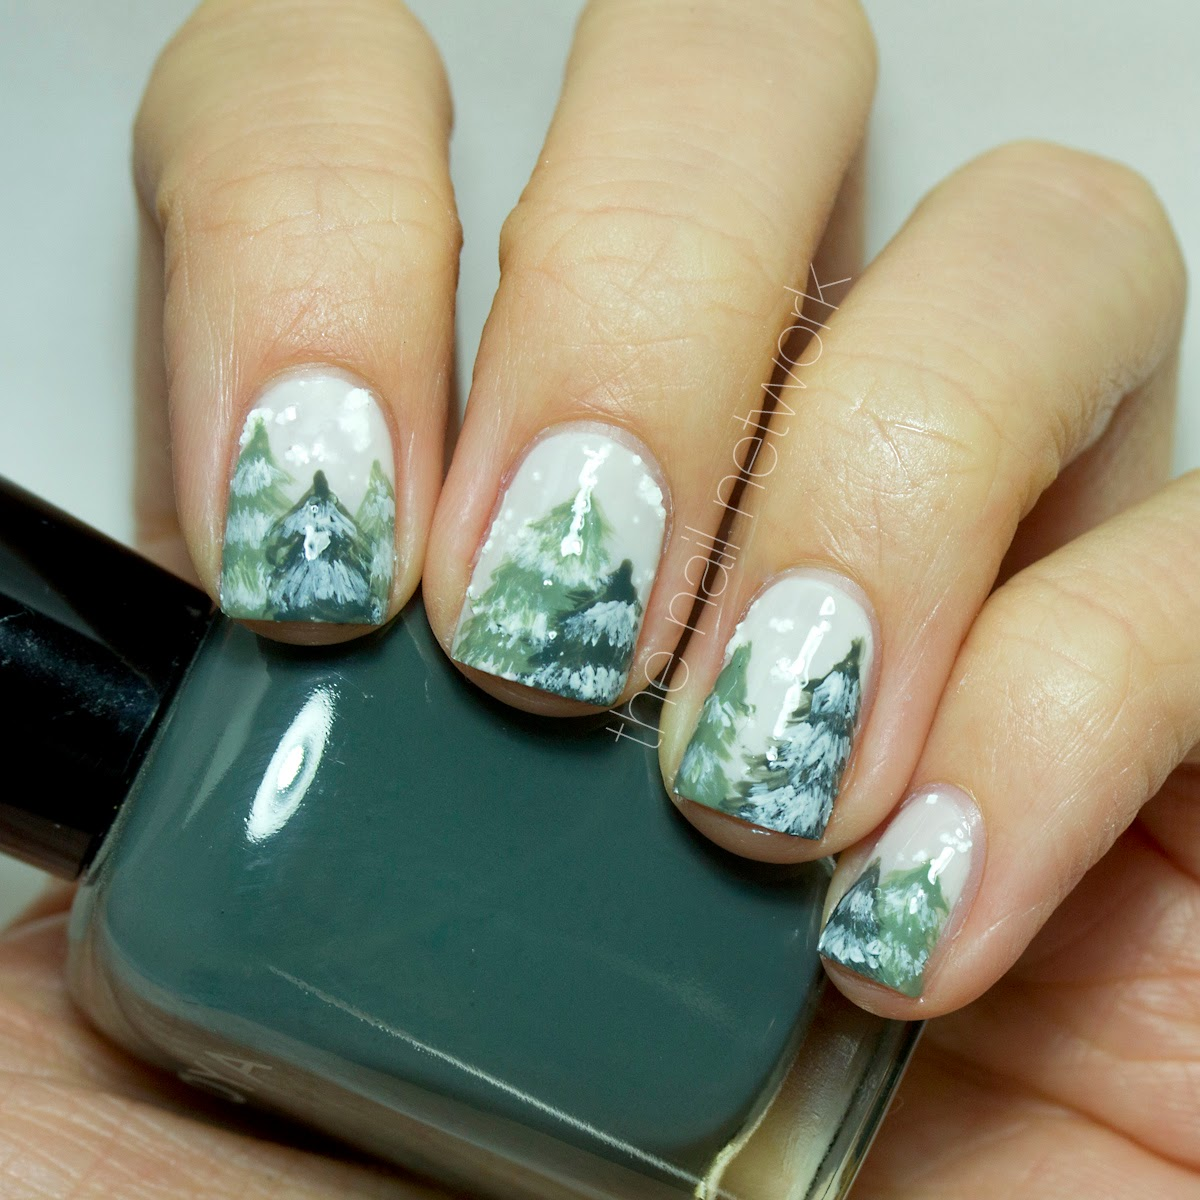 The Nail Network Tdocnas 2014 Day 5 Snowy Forest Nail Art